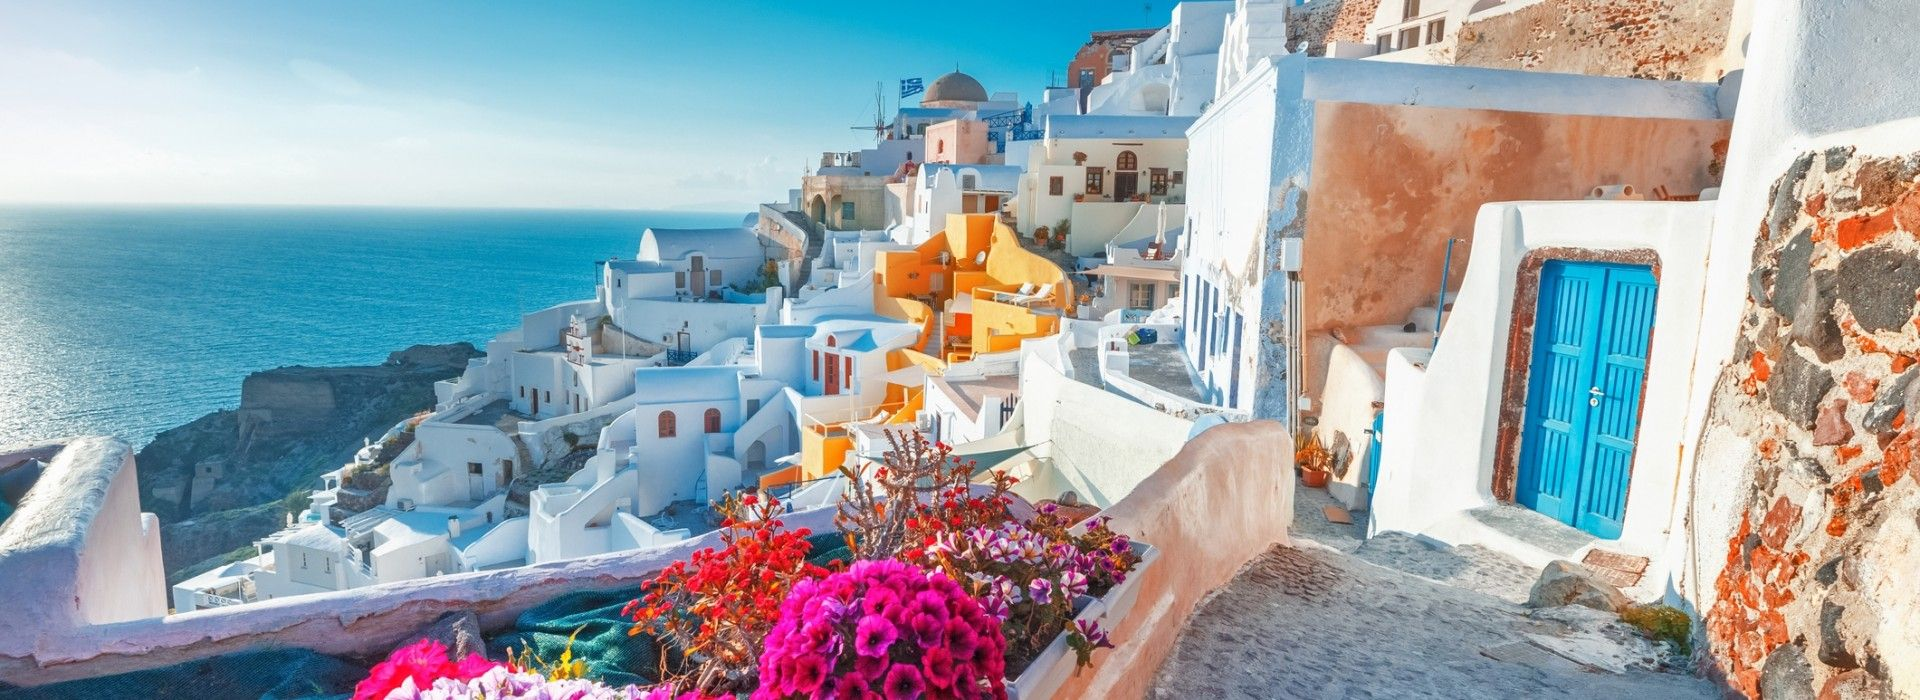 Art and architecture Tours in Mediterranean